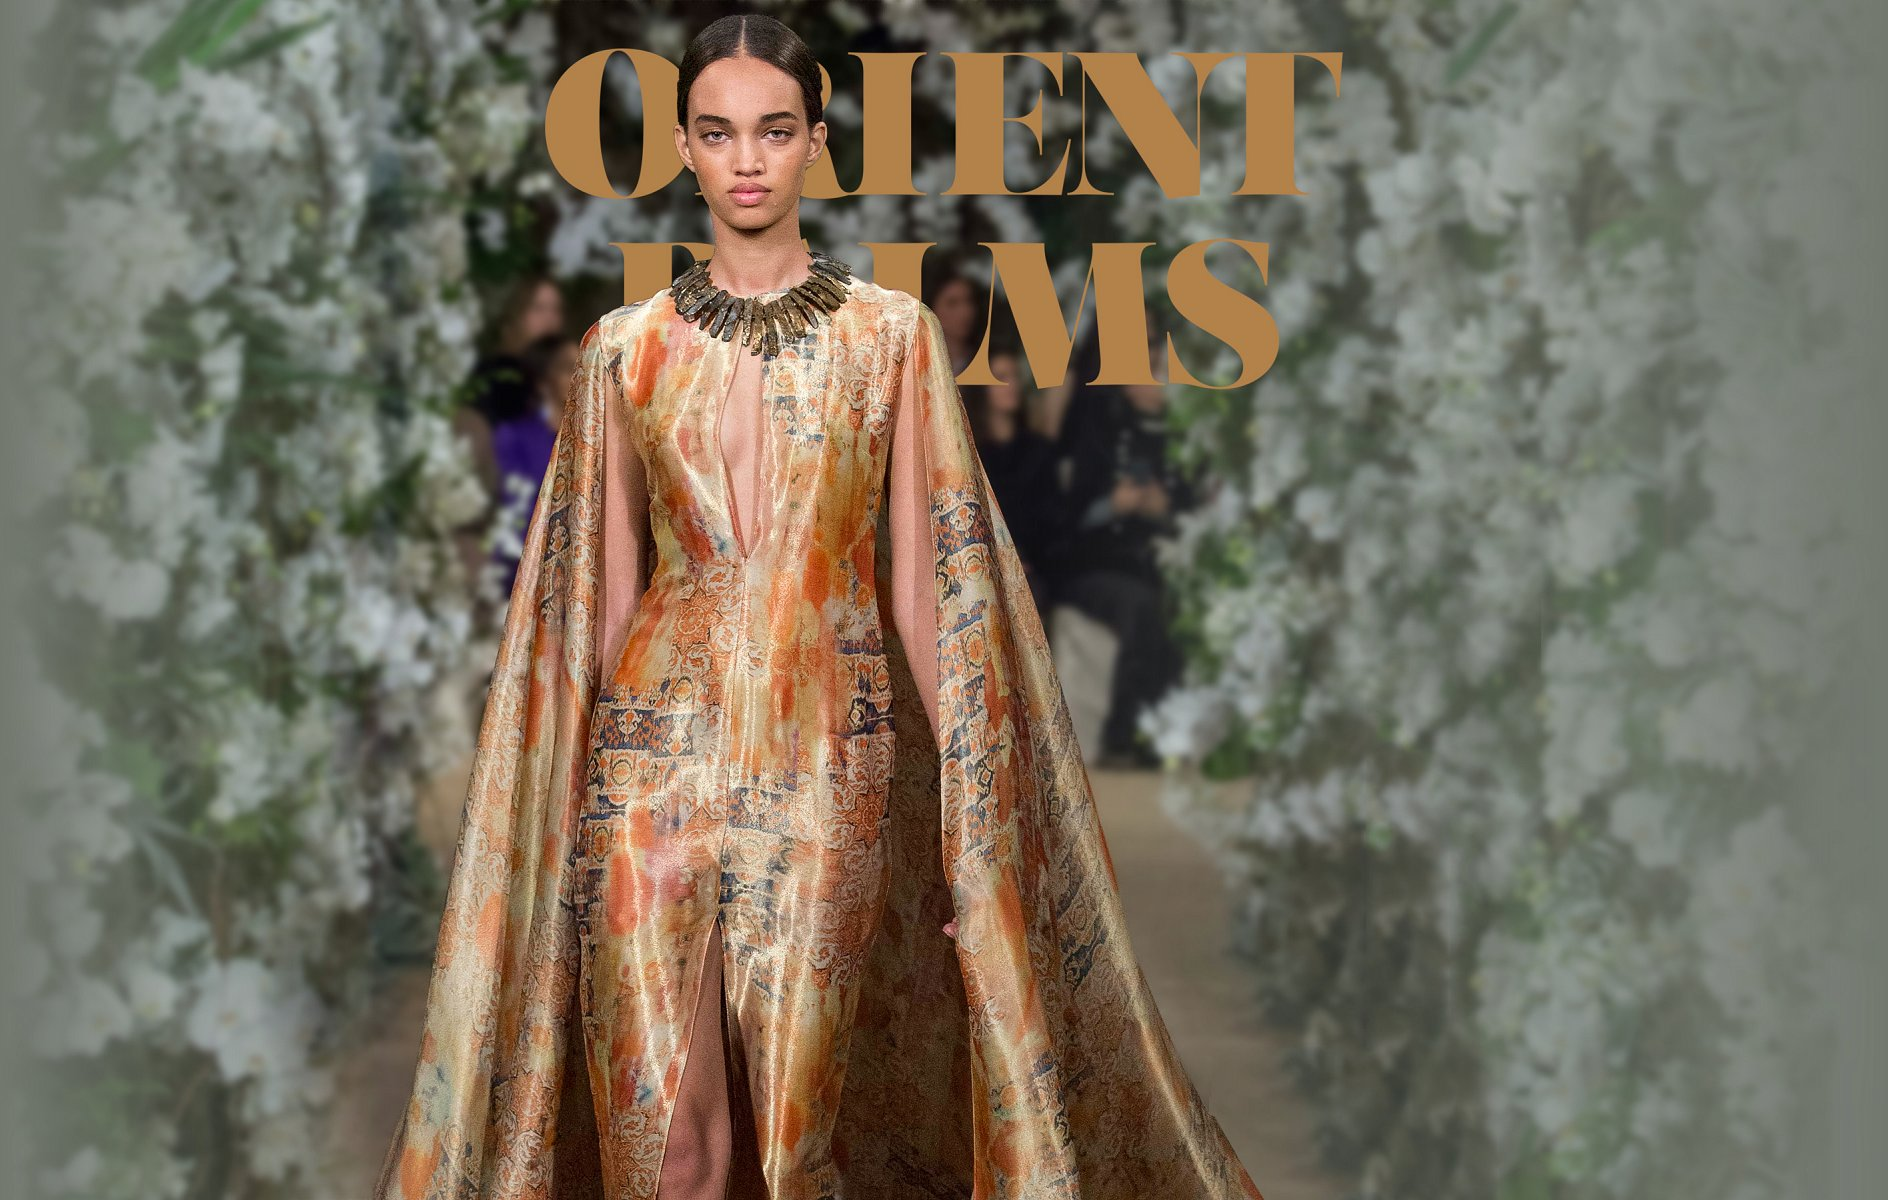 Ralph Lauren Fall-winter 2017-2018 - Ready-to- on james radin design, life by design, 70s home design, tom ford home design, dwell home design, raymond waites design, jessica simpson home design, gucci home design, target design, kelly wearstler home design, windsor smith design, oscar de la renta design, disney home design, luxe home design, pinterest home design, timberland home design, art deco lounge bar design, kim kardashian home design, polo home design, jennifer lopez home design,